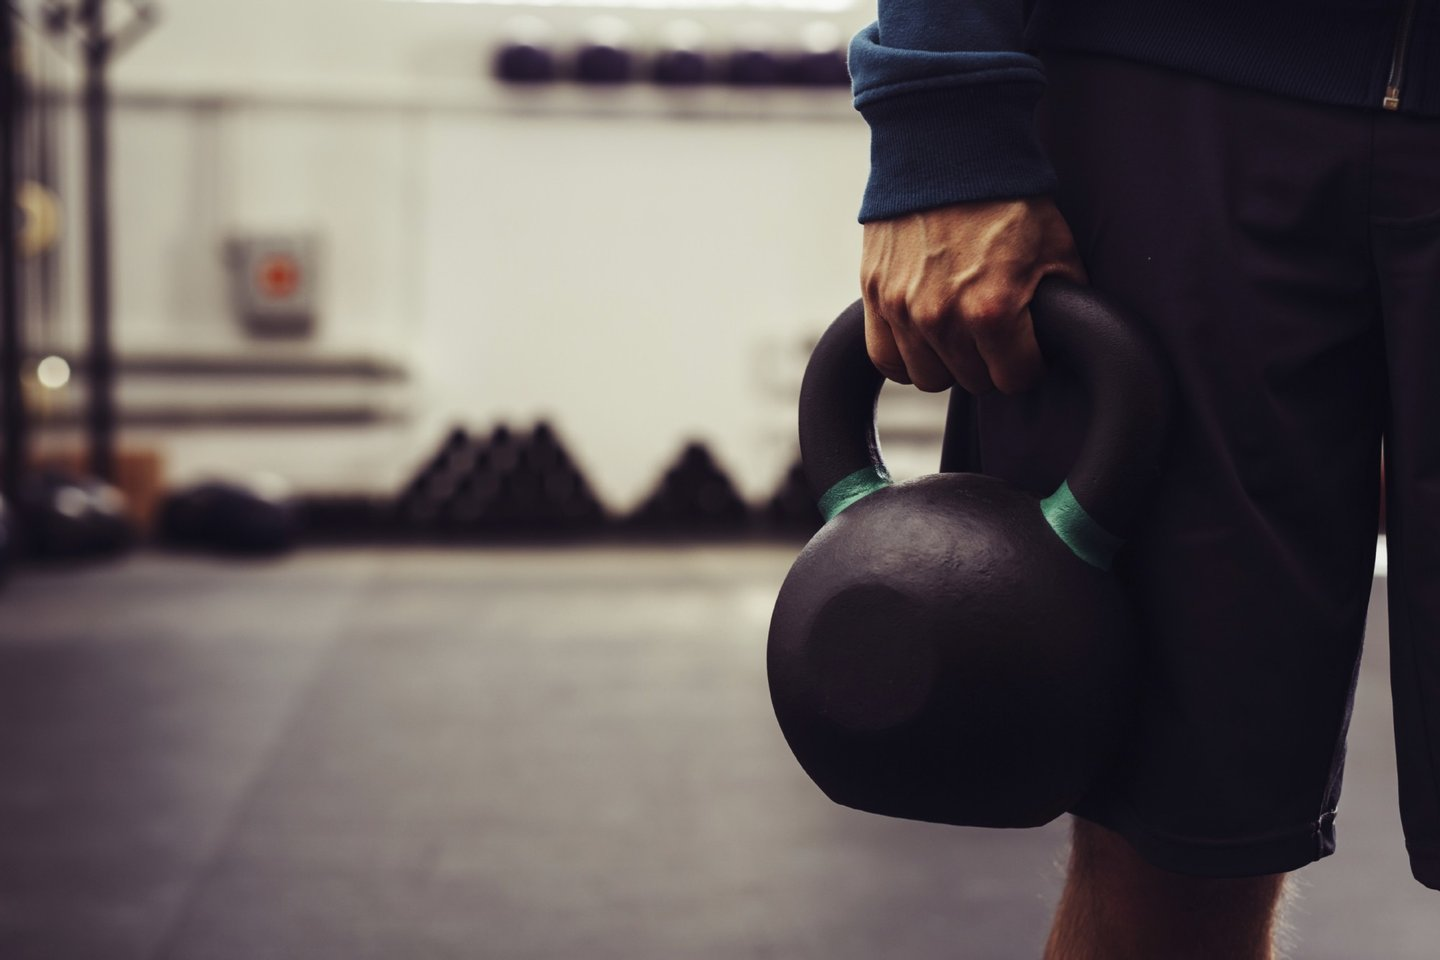 Exercise, Recreational Pursuit, activity, caucasian, closeup, cross, cross training, crossfit, dark, fit, fitness, grab, gym, holding, indoors, kettlebell, male, man, one person, people, sport, sport activity, strong, training, weight, weightlifting, workout,